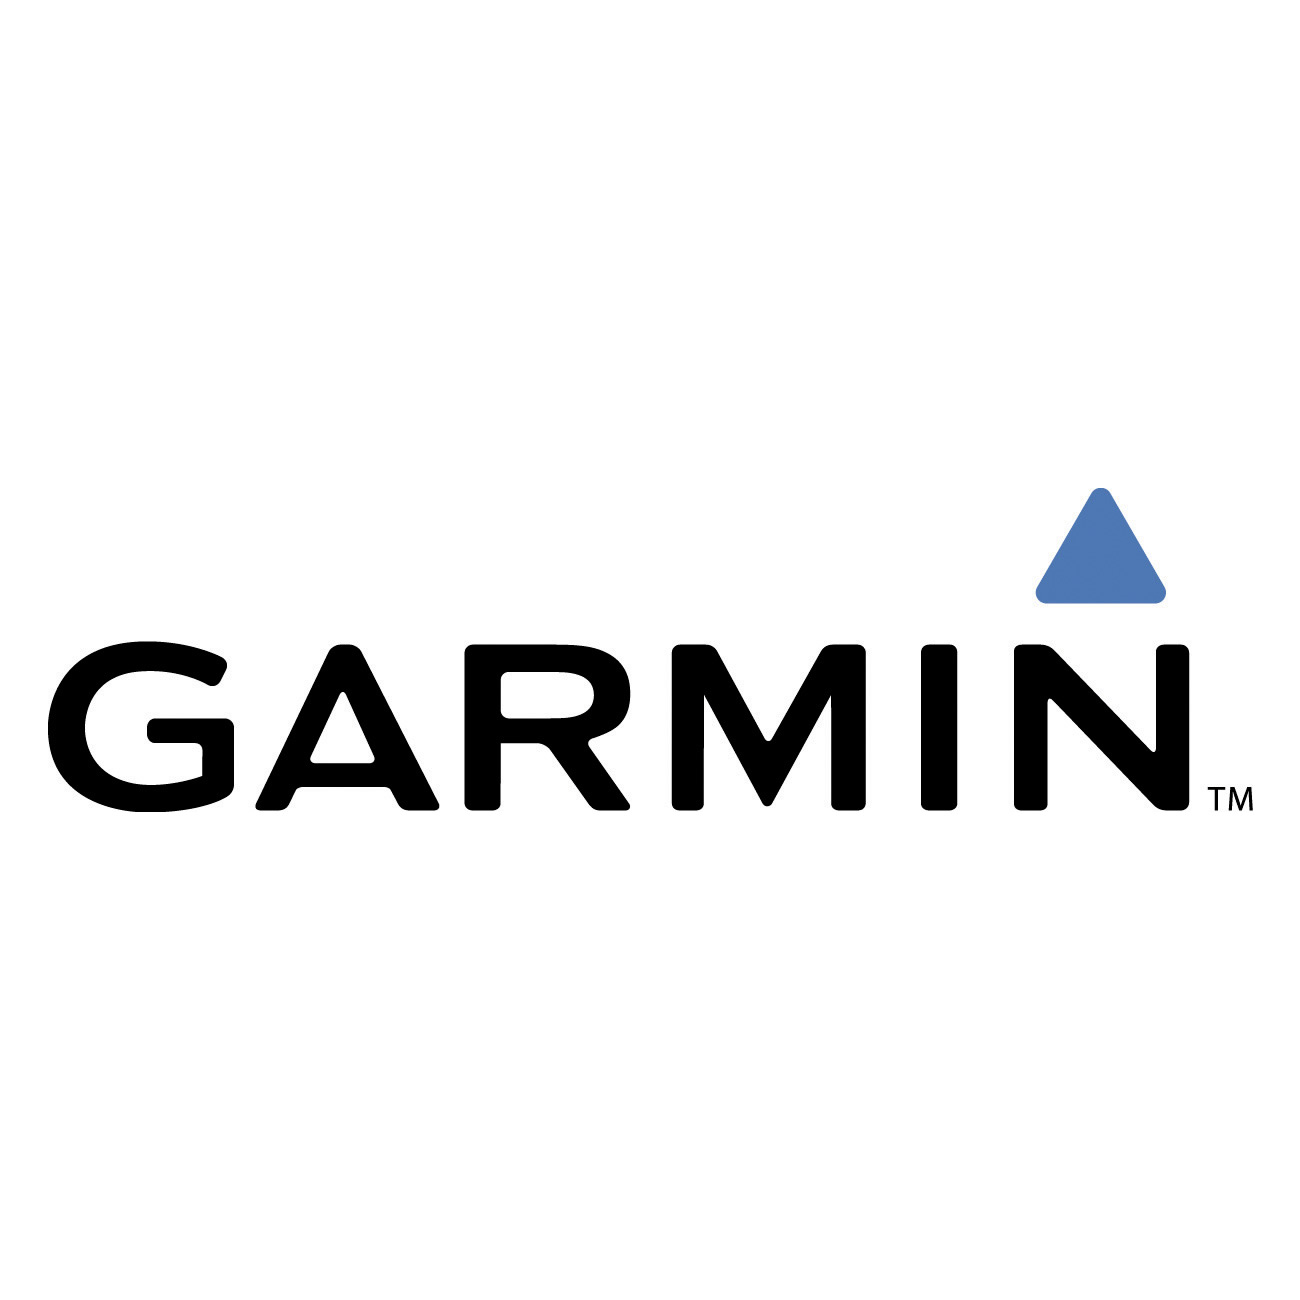 Garmin Hud Projects Smartphone Navigation On Car Windshields